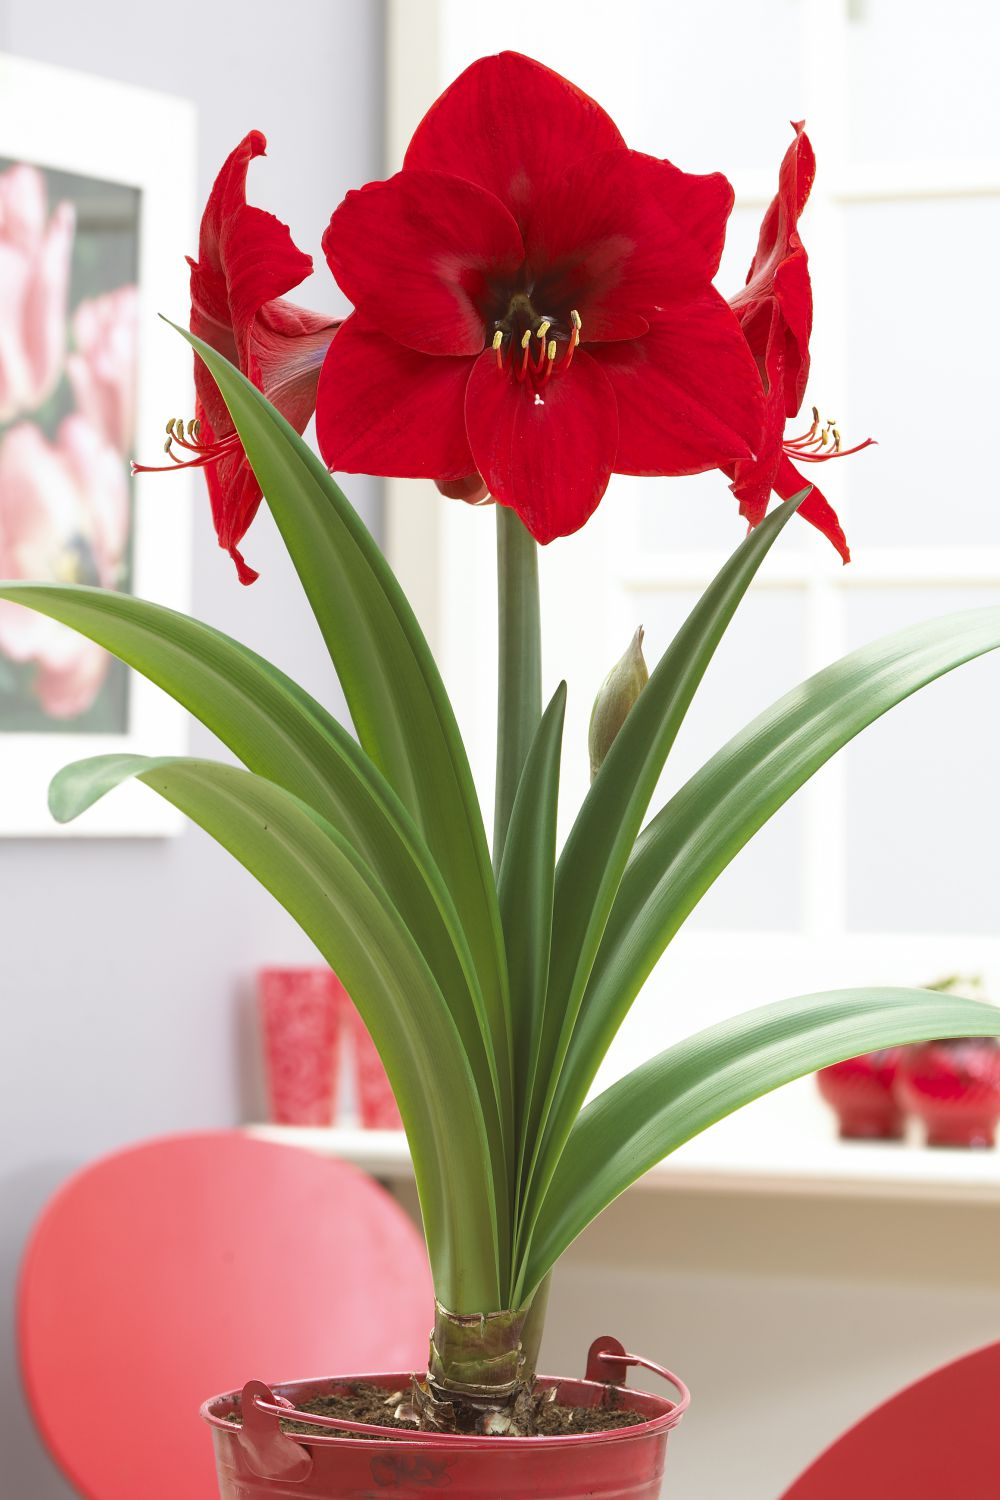 Amaryllis | Winter Flower Garden Indoors: Blooming Plants to Grow In the House during Cold Weather Months | FarmFoodFamily.com